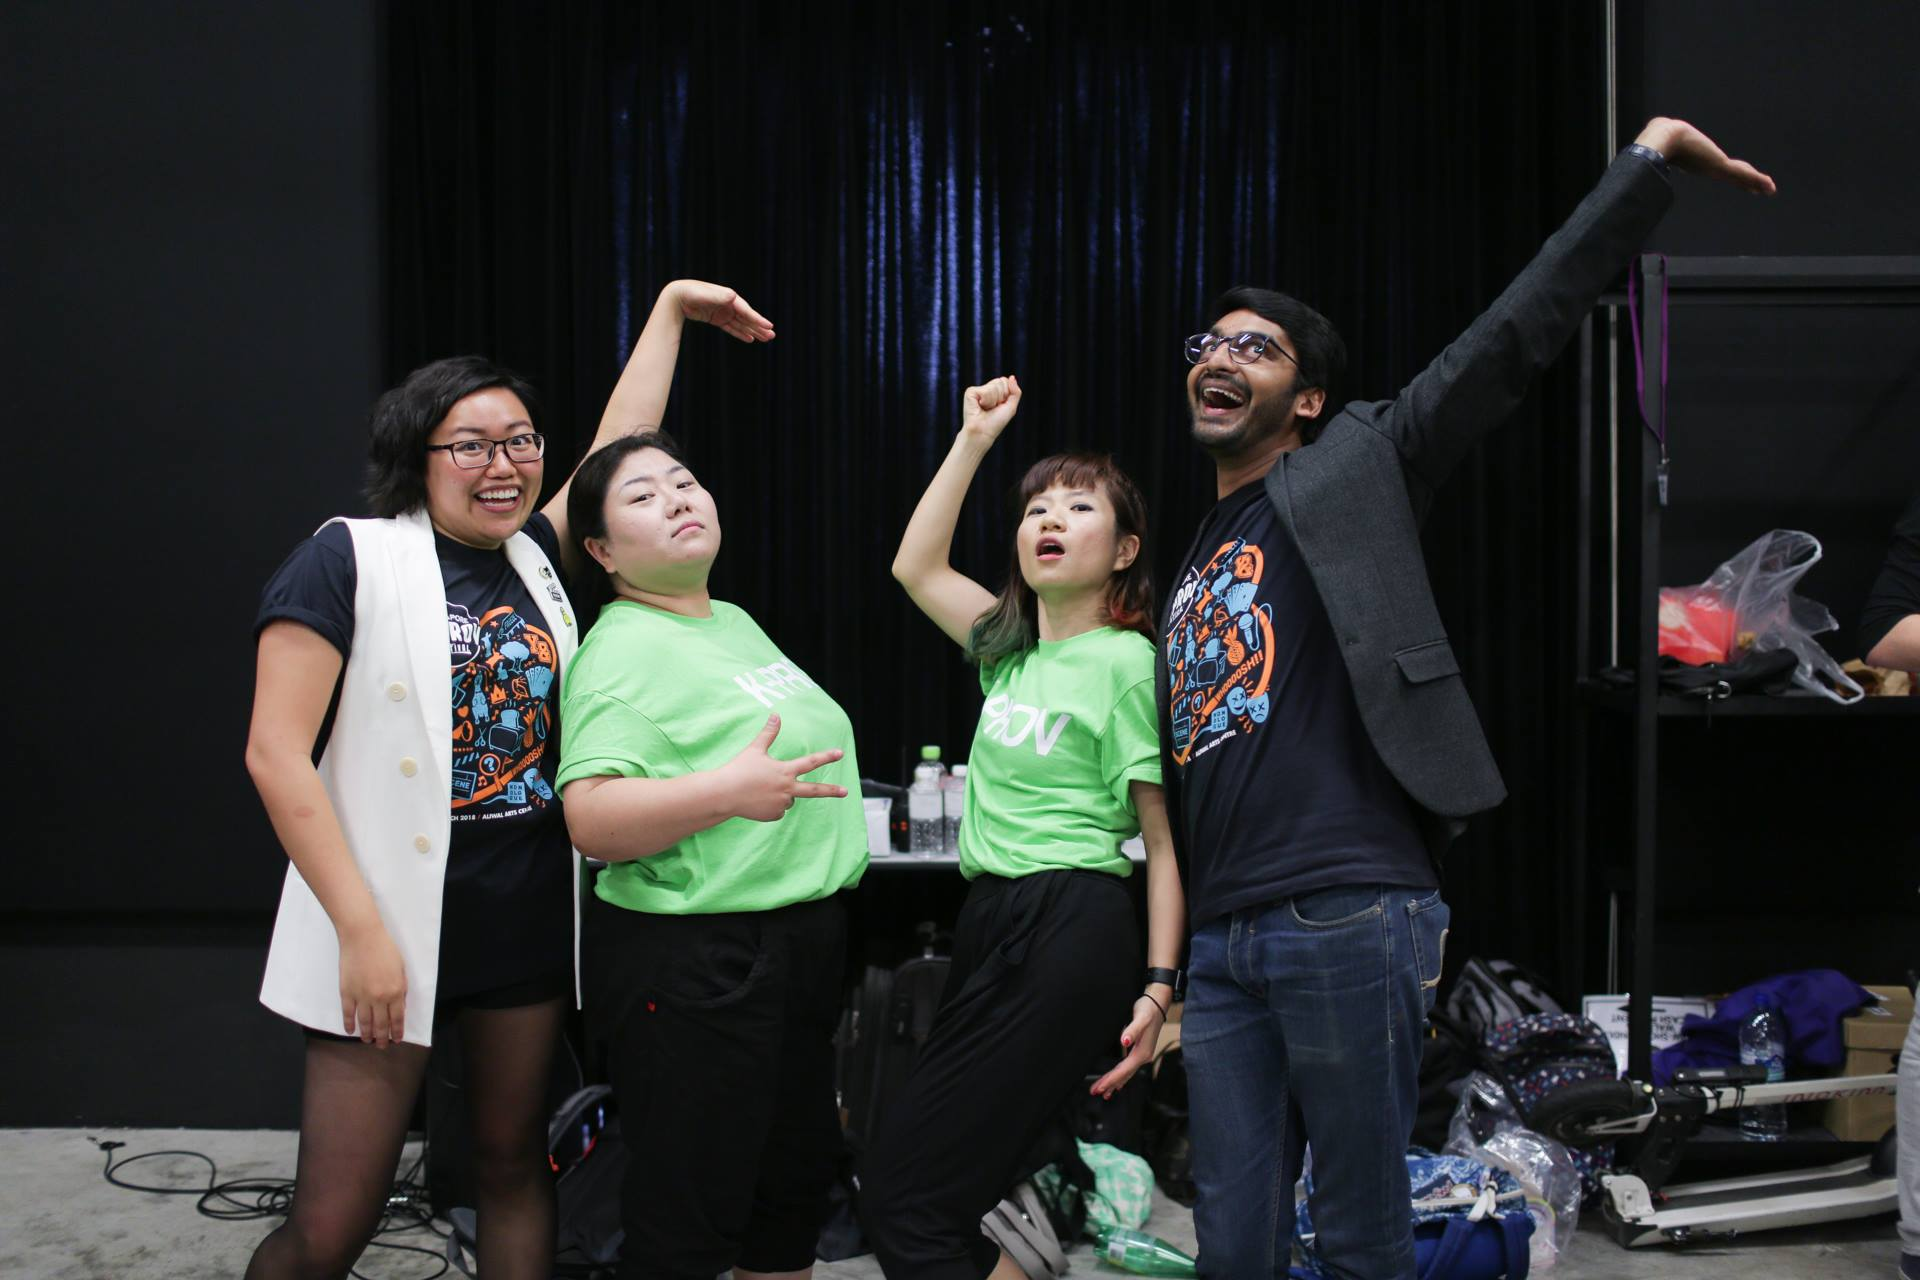 Imfrog from South Korea, having fun with our festival hosts